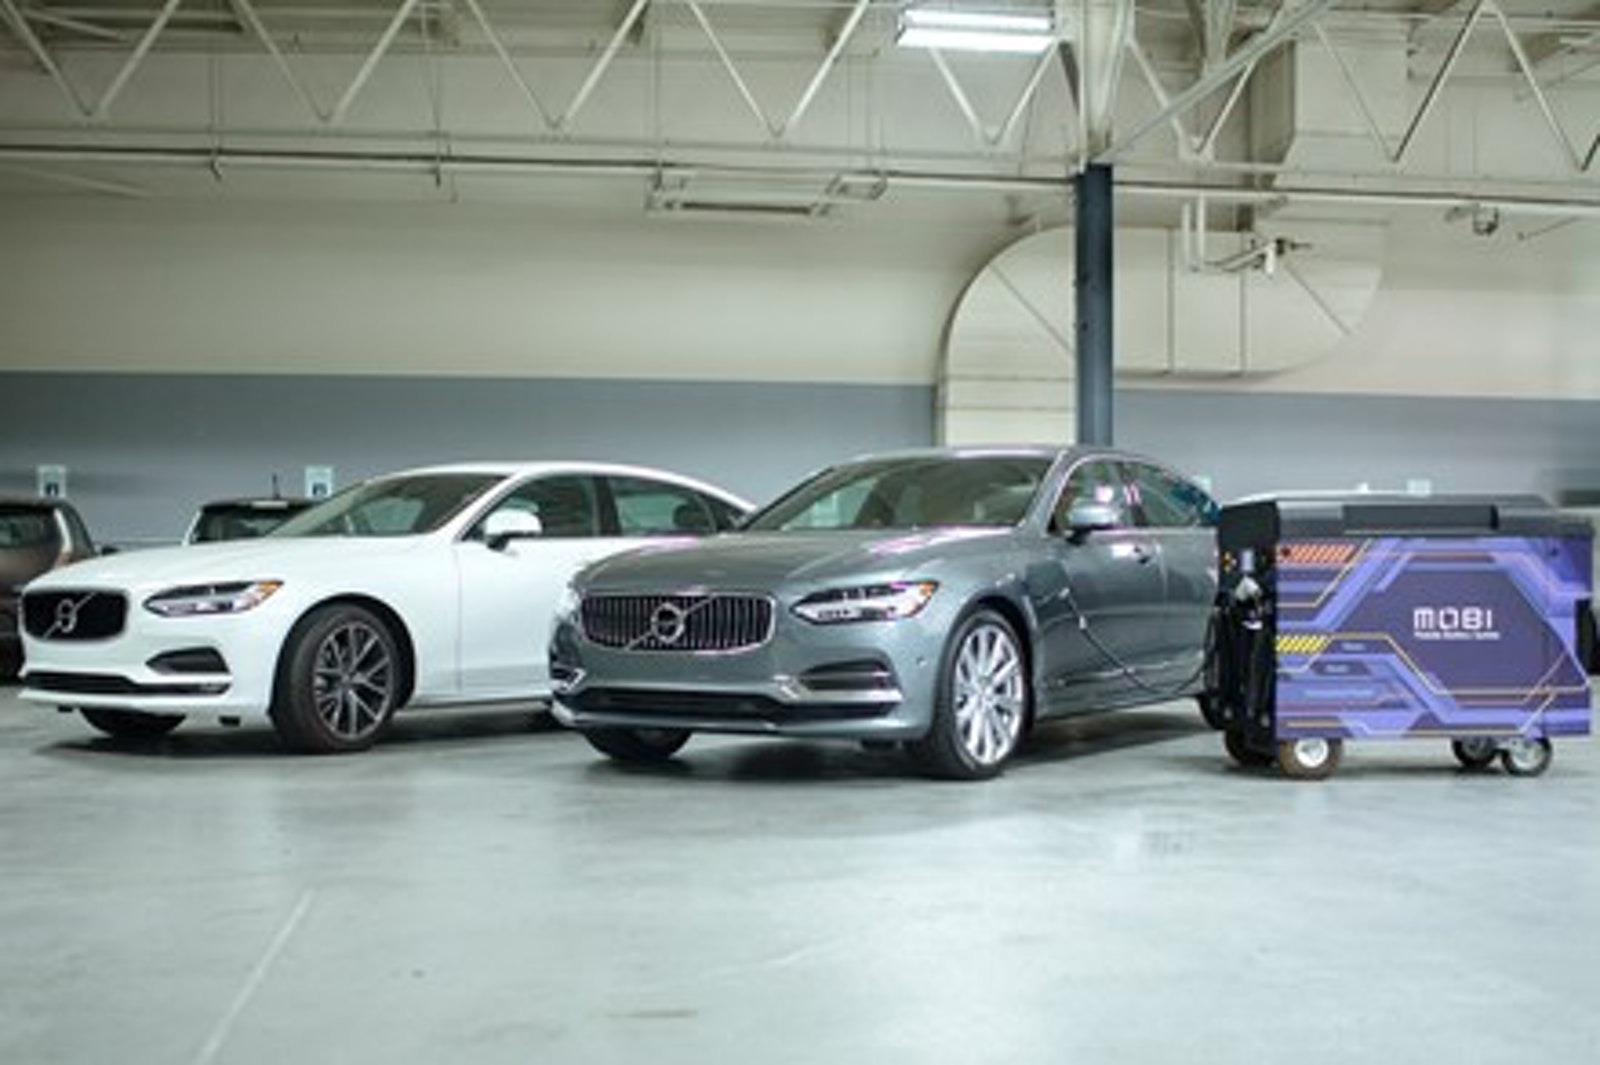 Volvo Cars Has Acquired A Stake In Electric Car Charging Company Freewire Technologies Via The Tech Fund Deepening S Commitment To